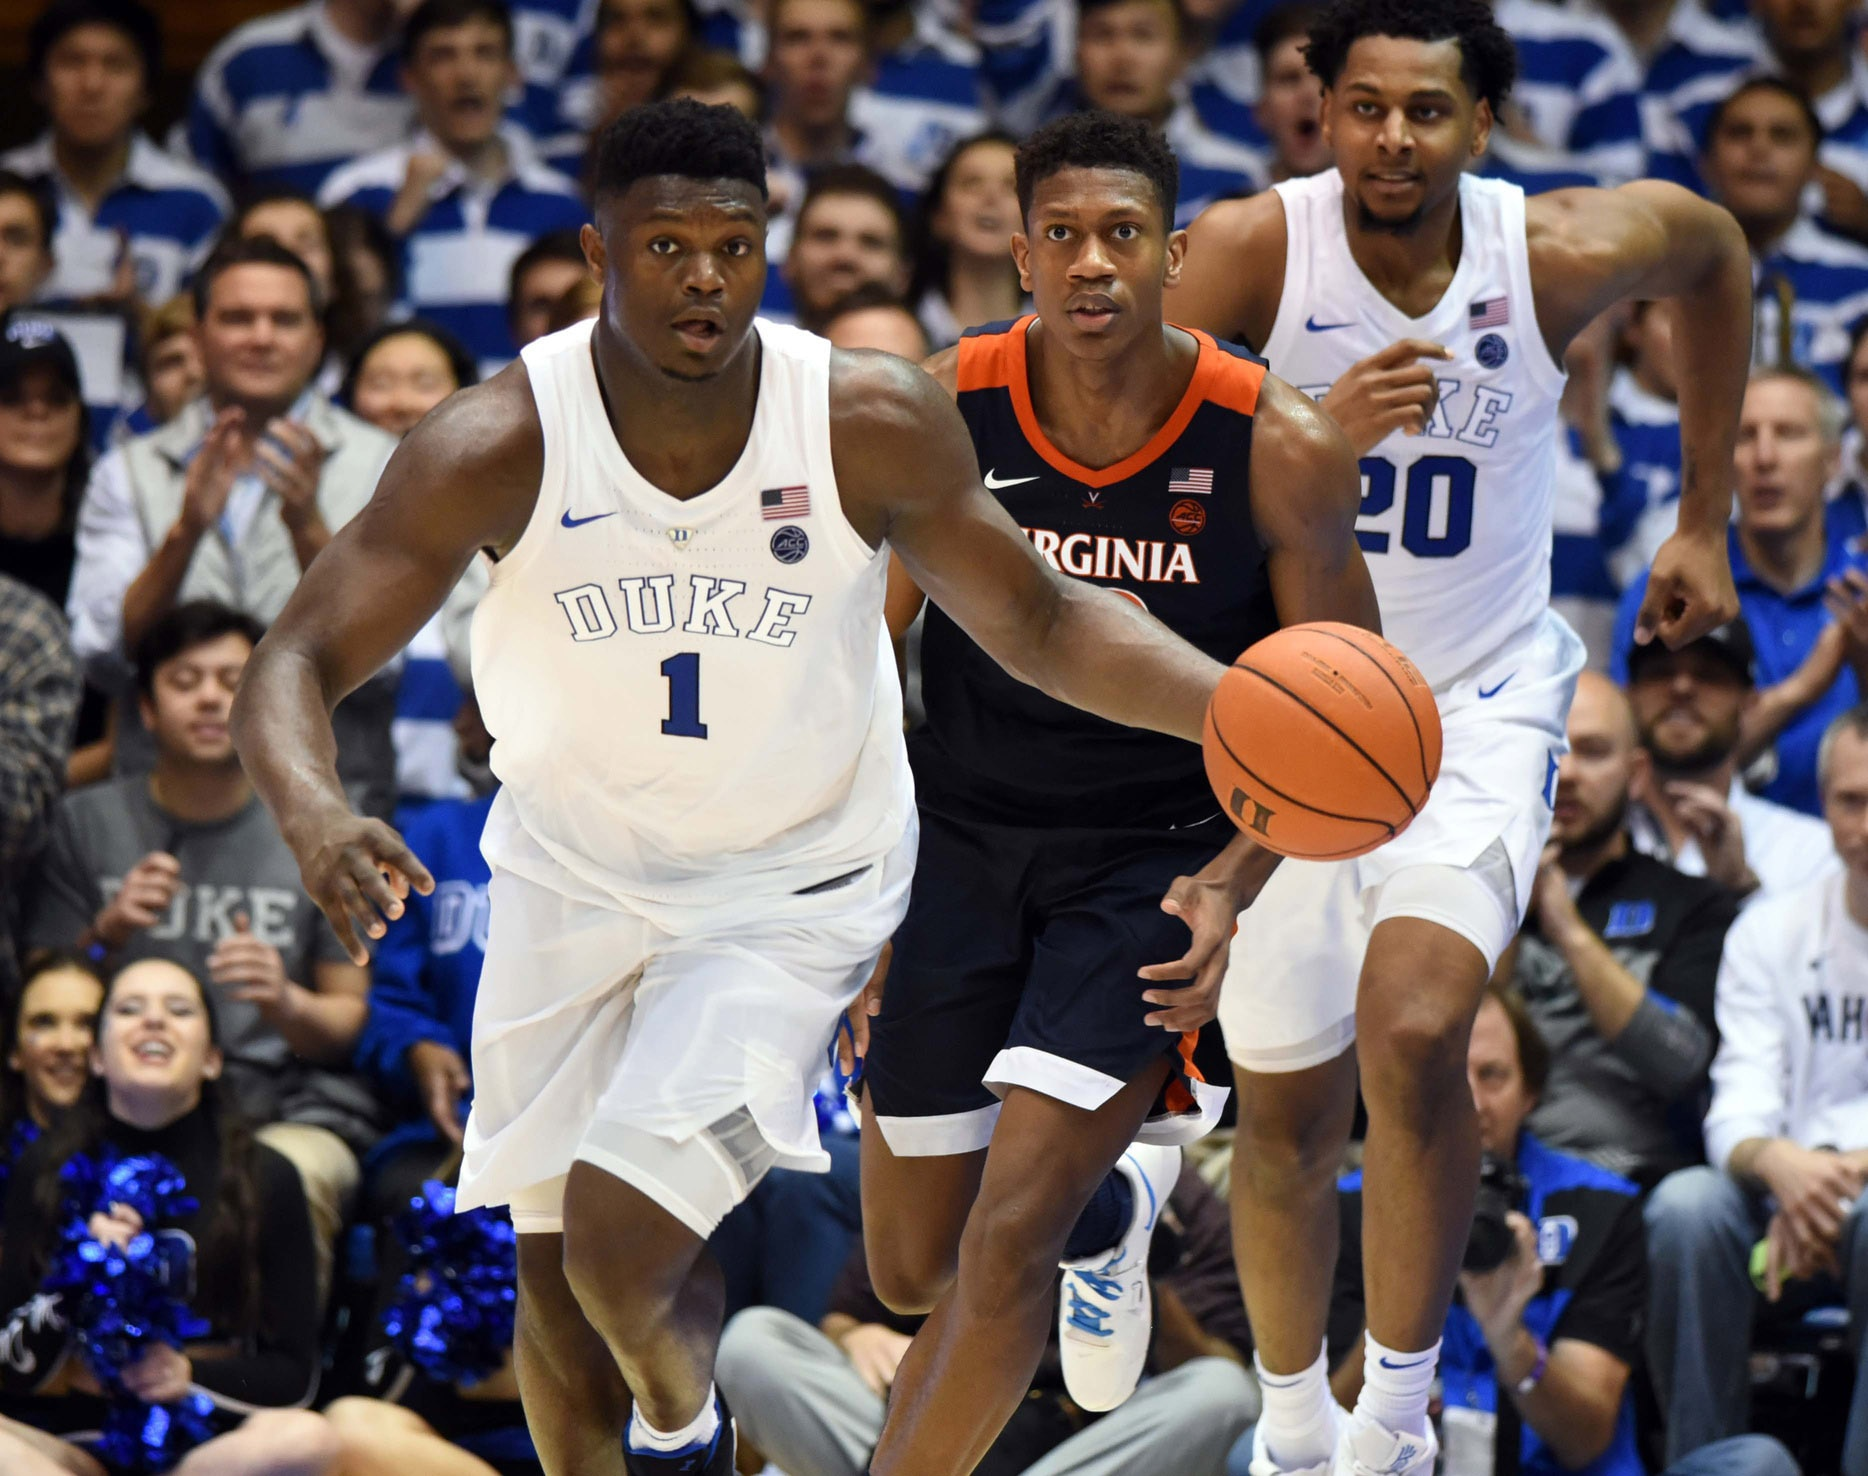 707c99c6120 Duke beats Virginia 81-71 with lights-out shooting to complete season sweep  of Cavaliers